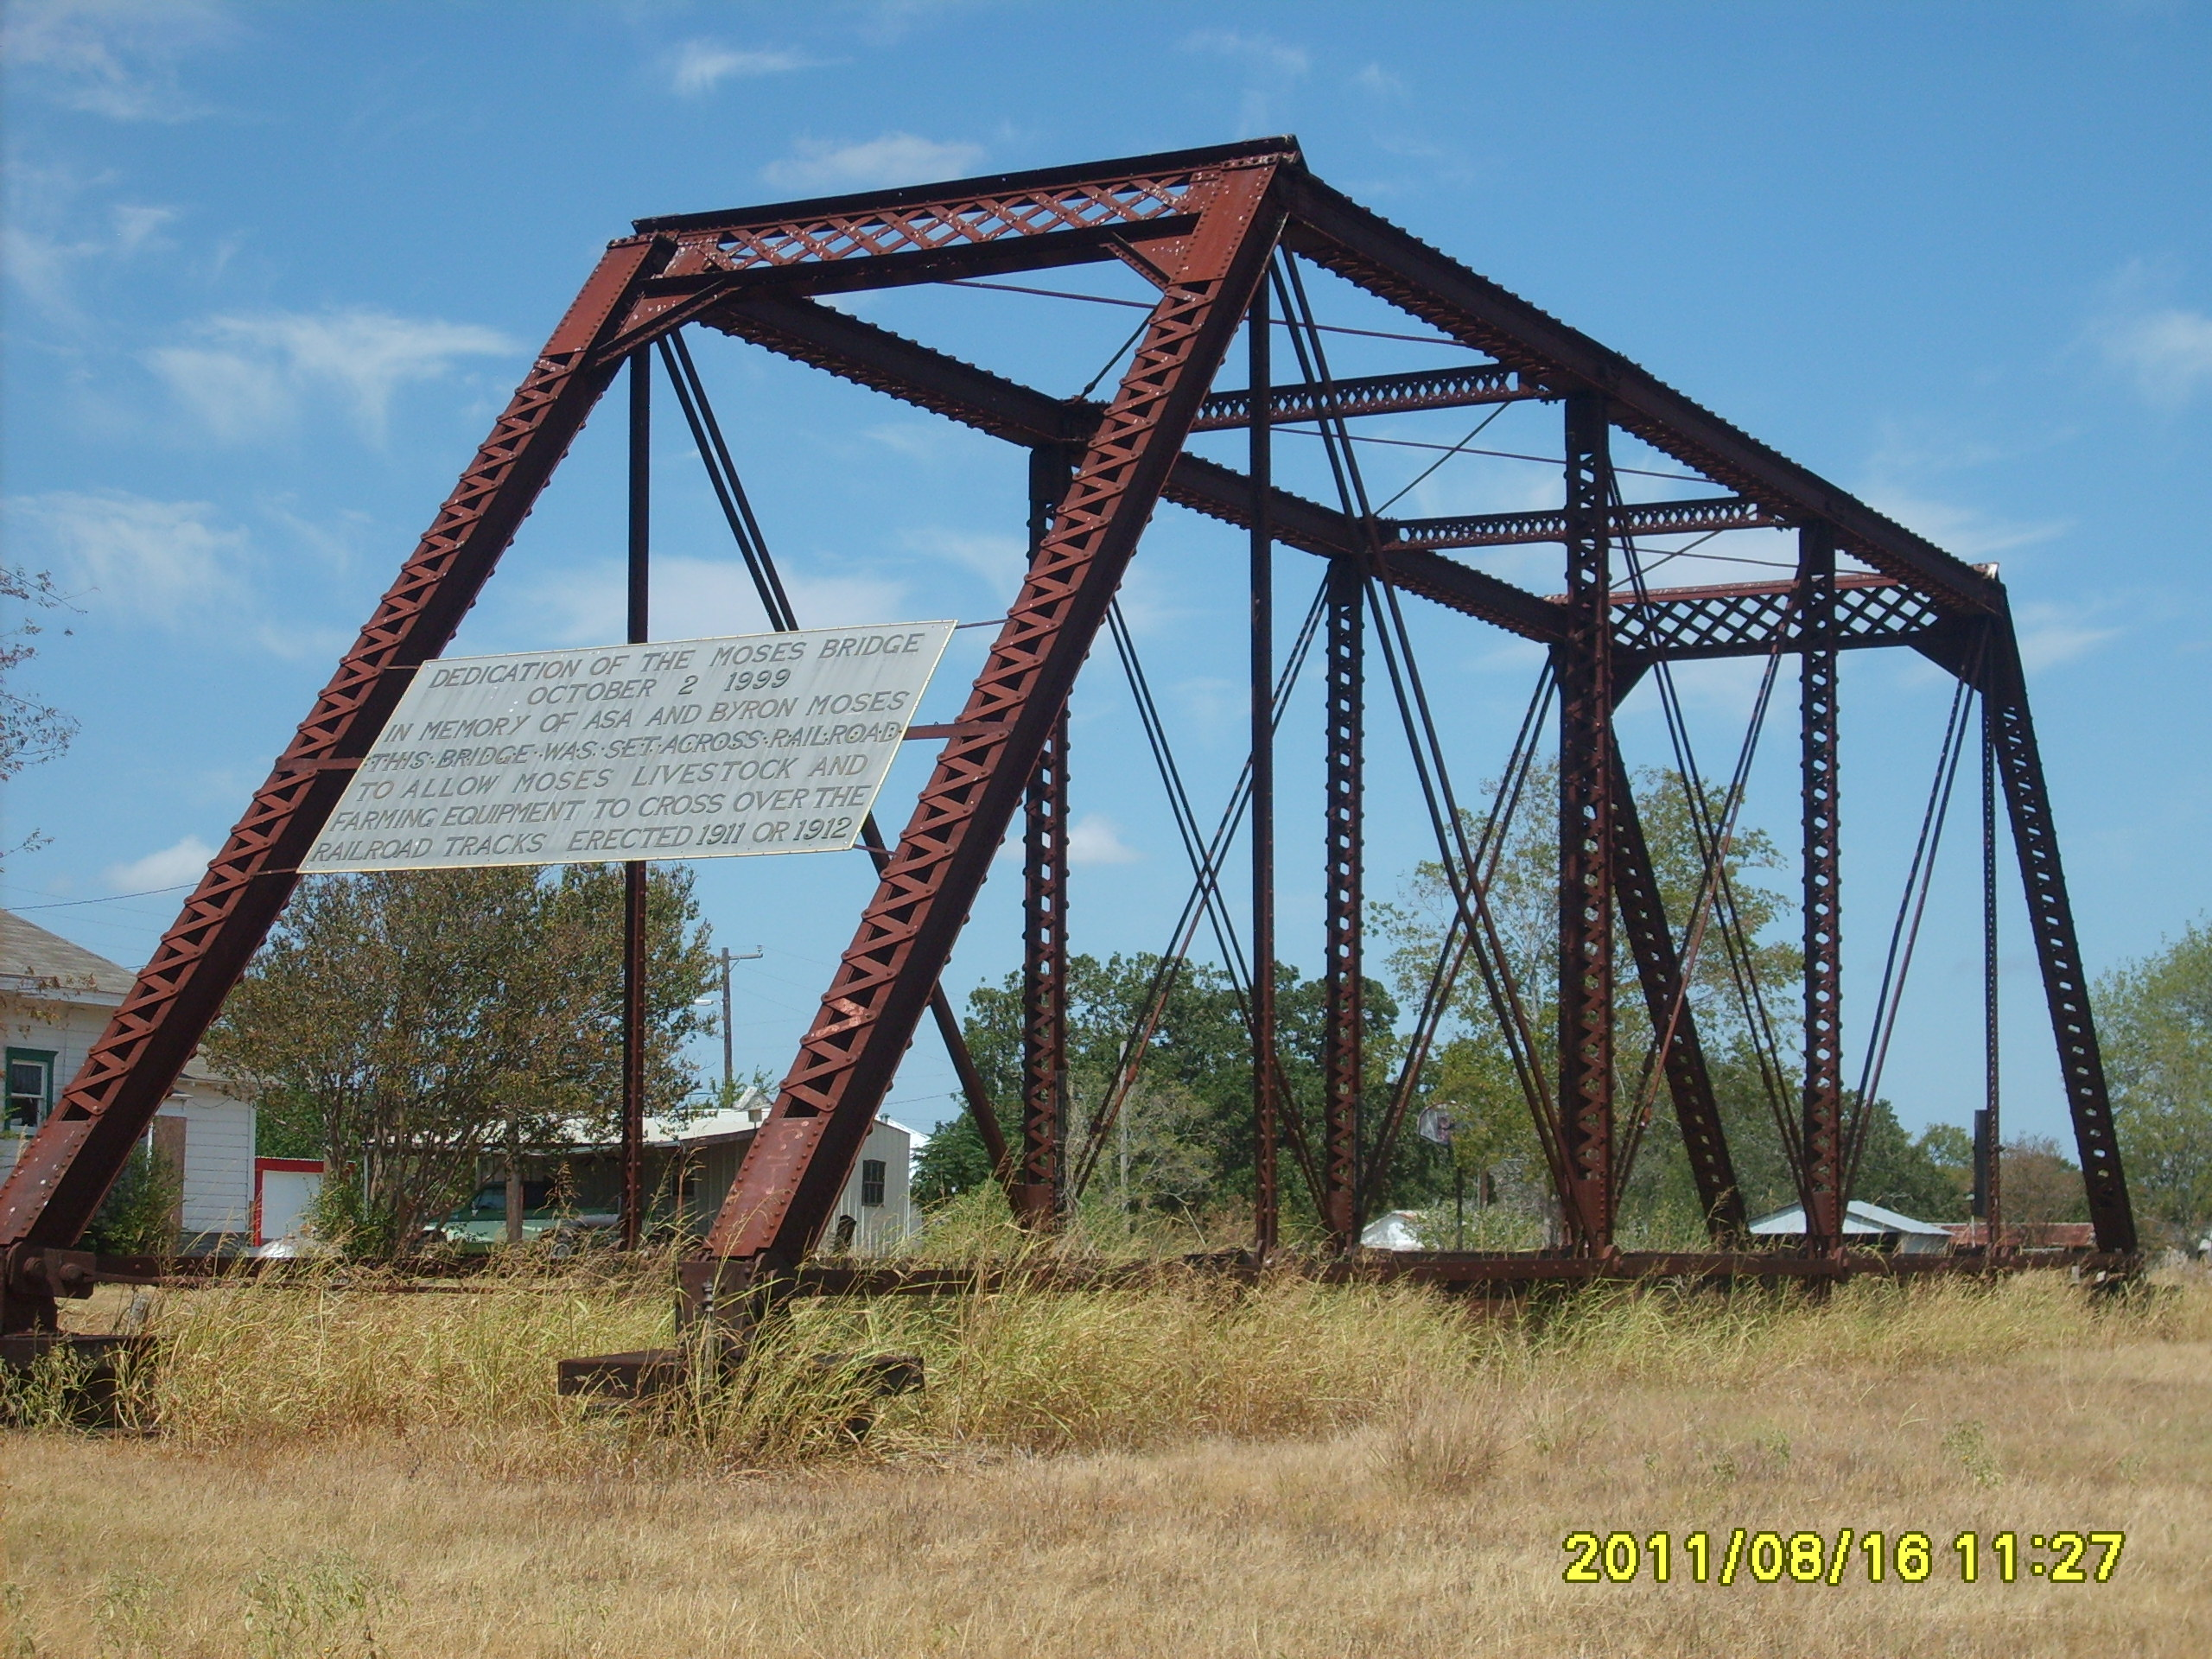 The bridge after being moved to the first location.